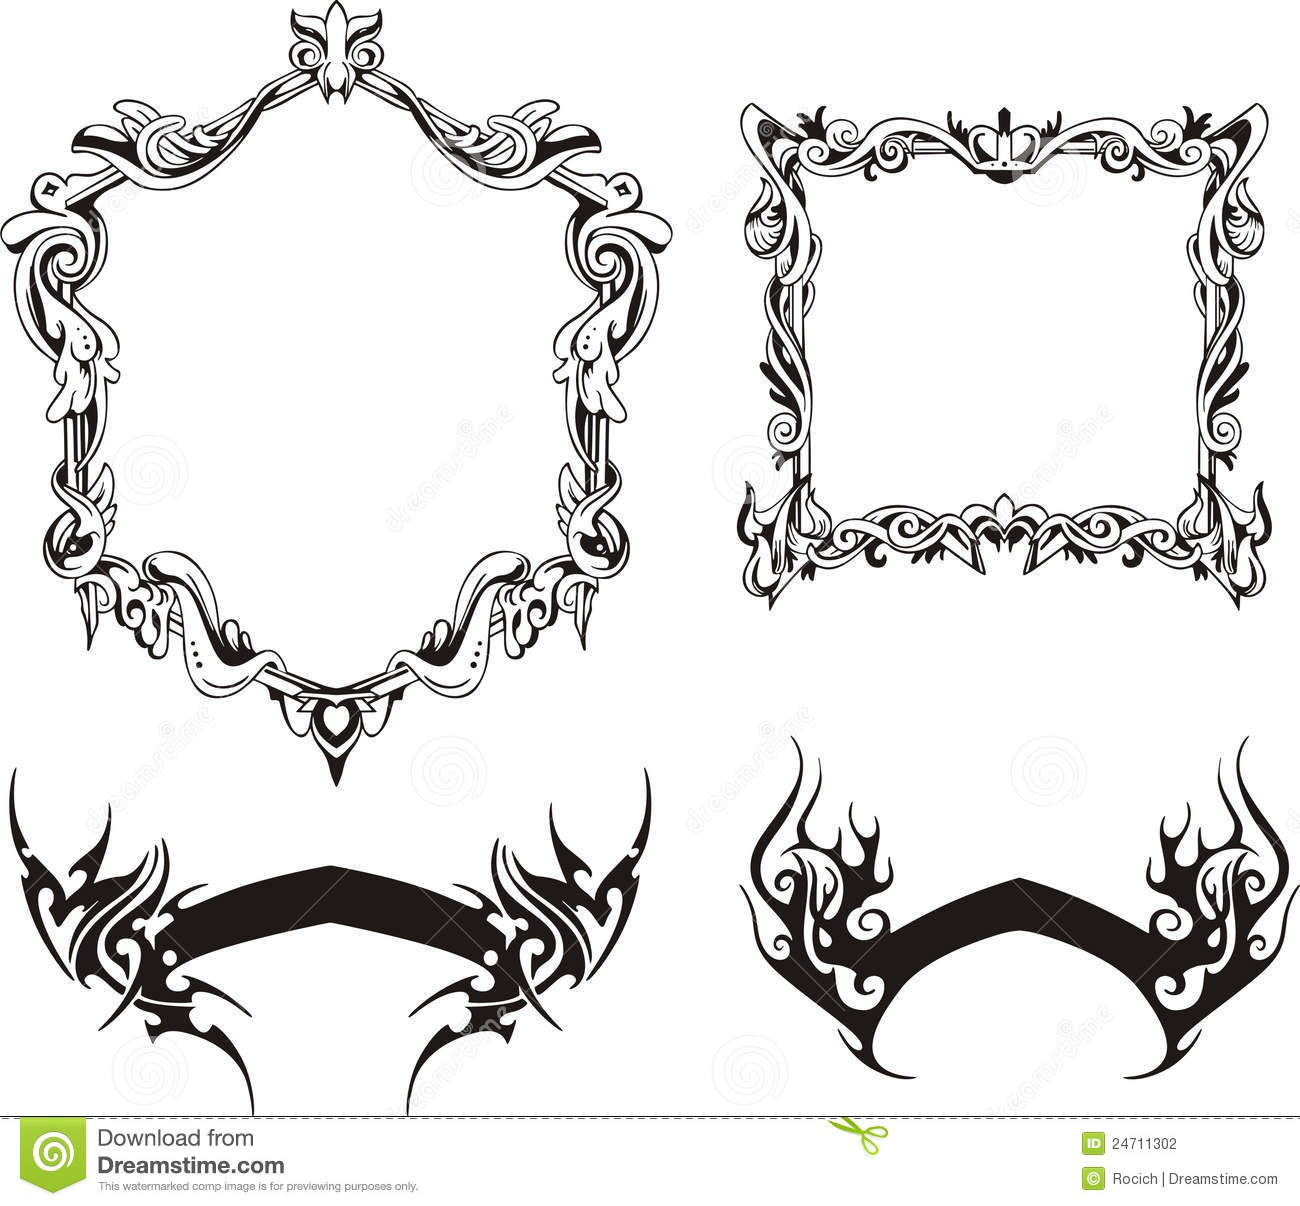 decorative frames and ribbons - Decorative Frames